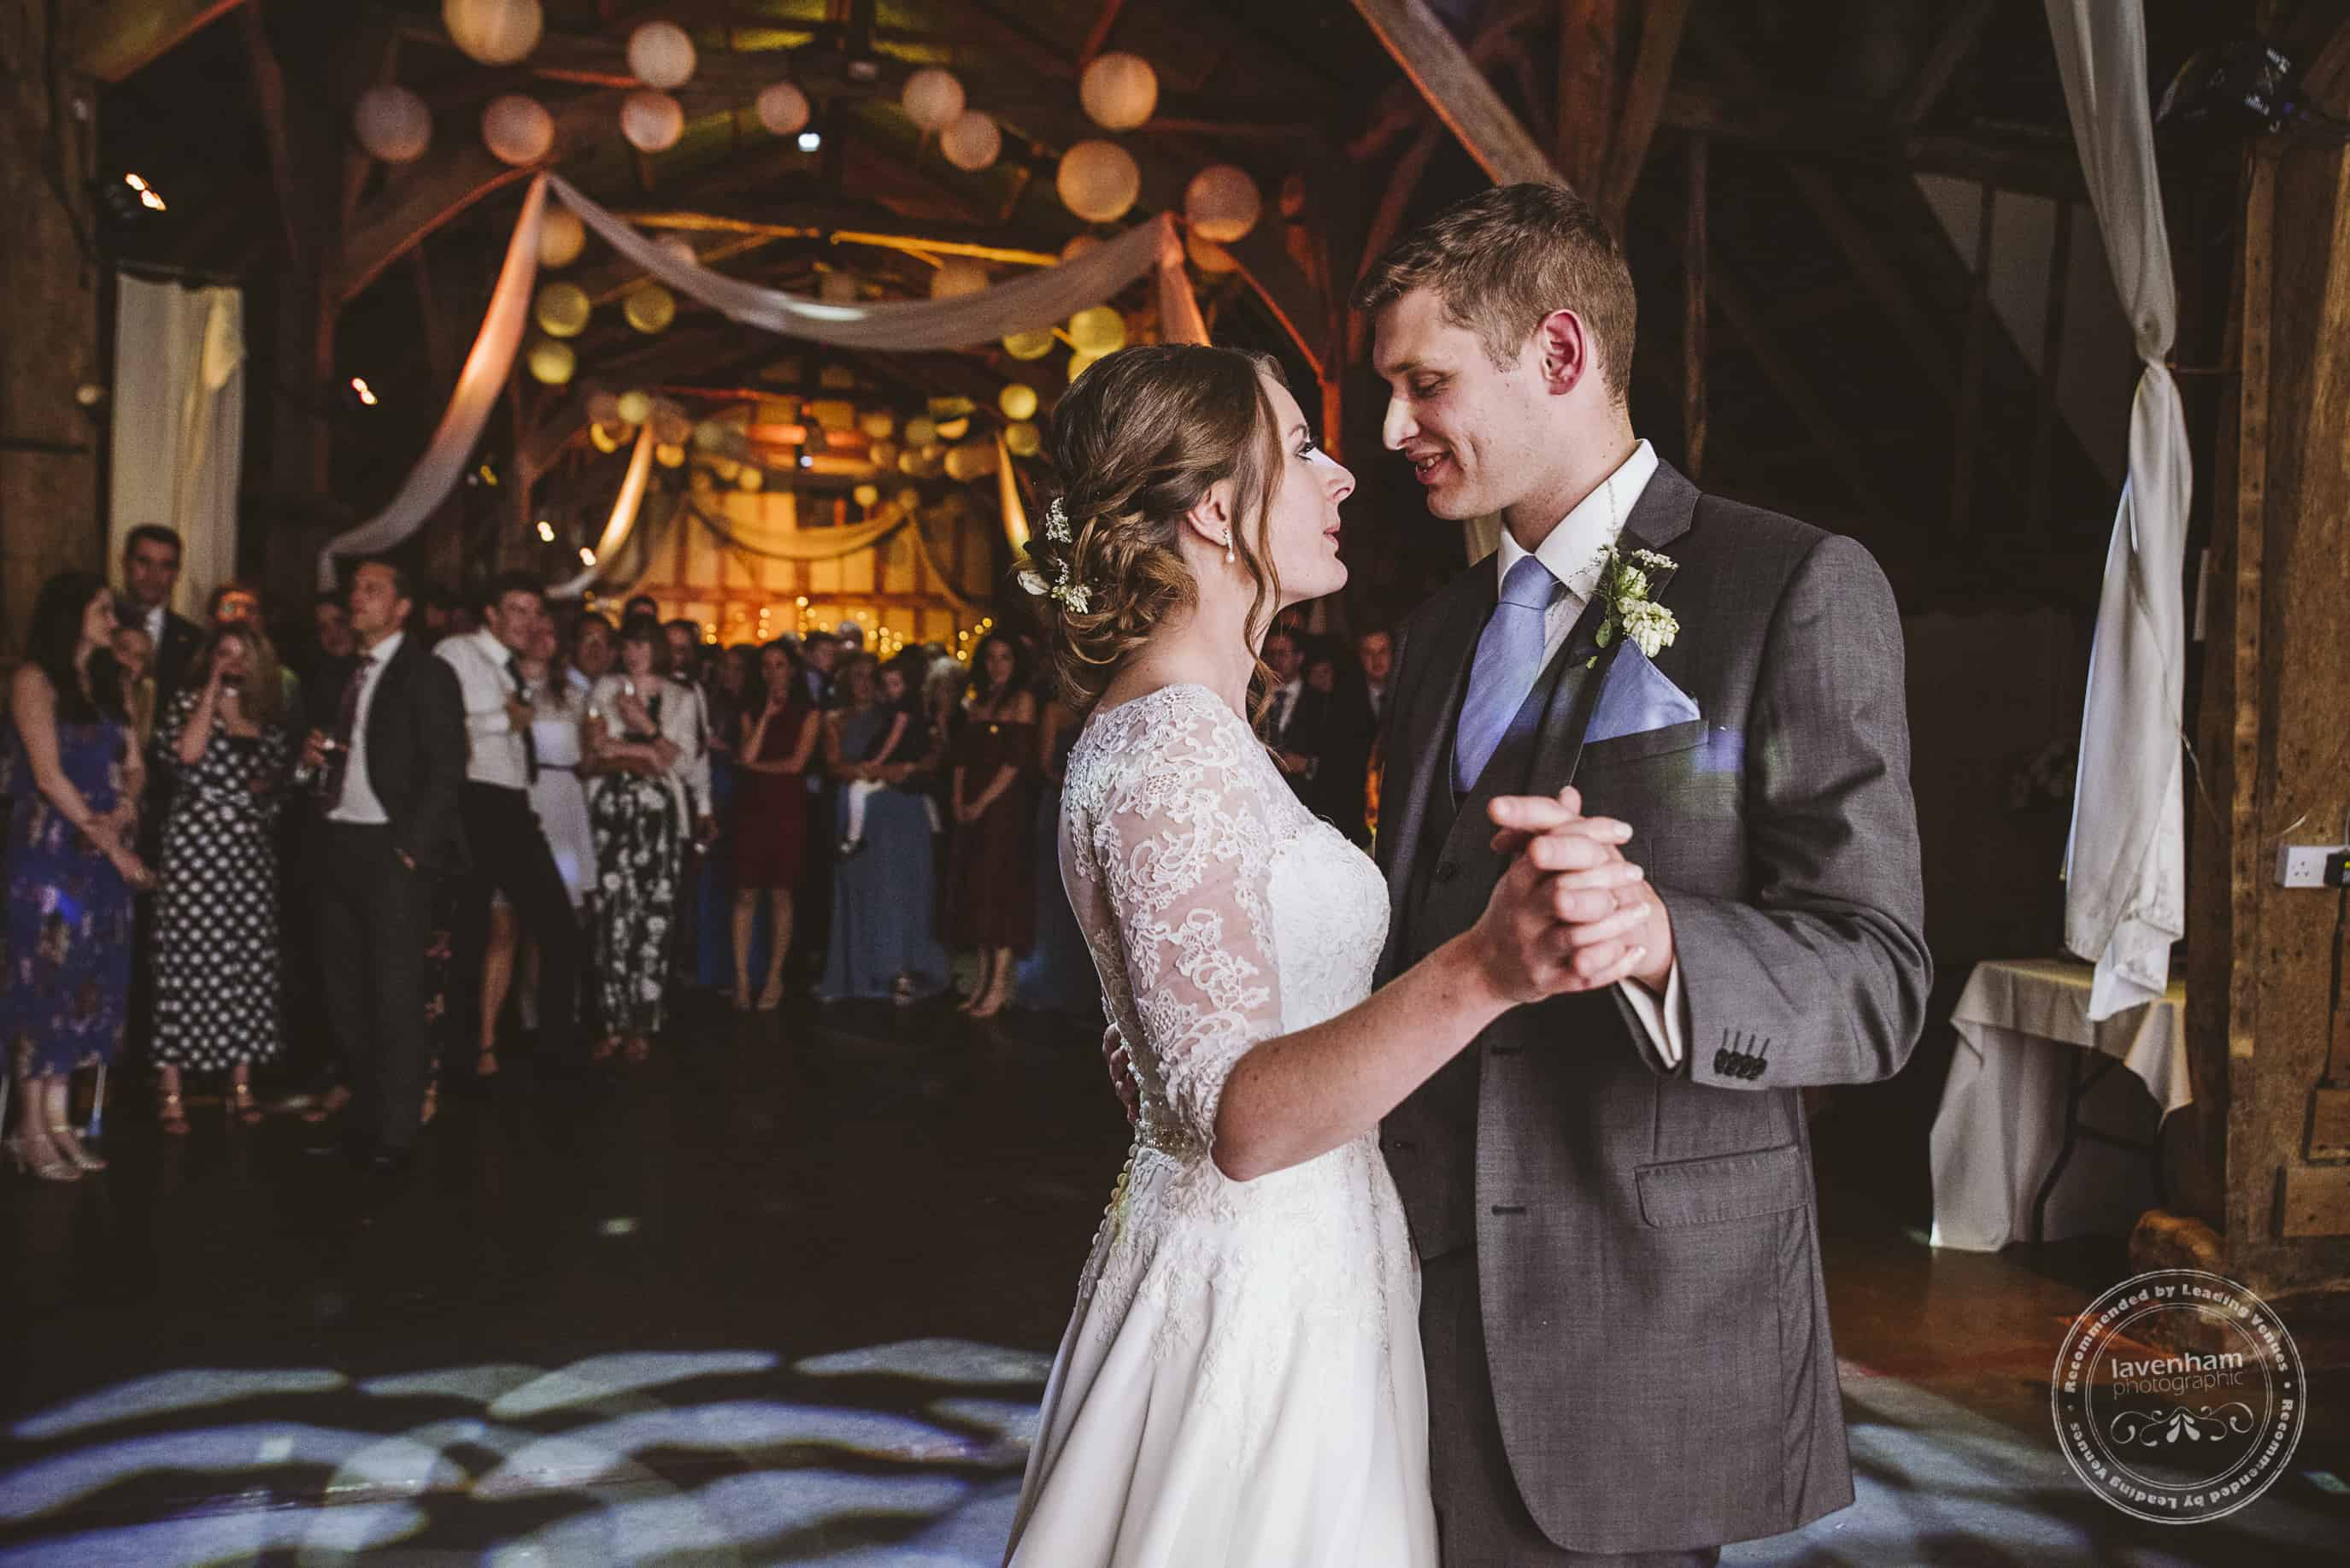 220918 Alpheton Barn Wedding Photography by Lavenham Photographic 142